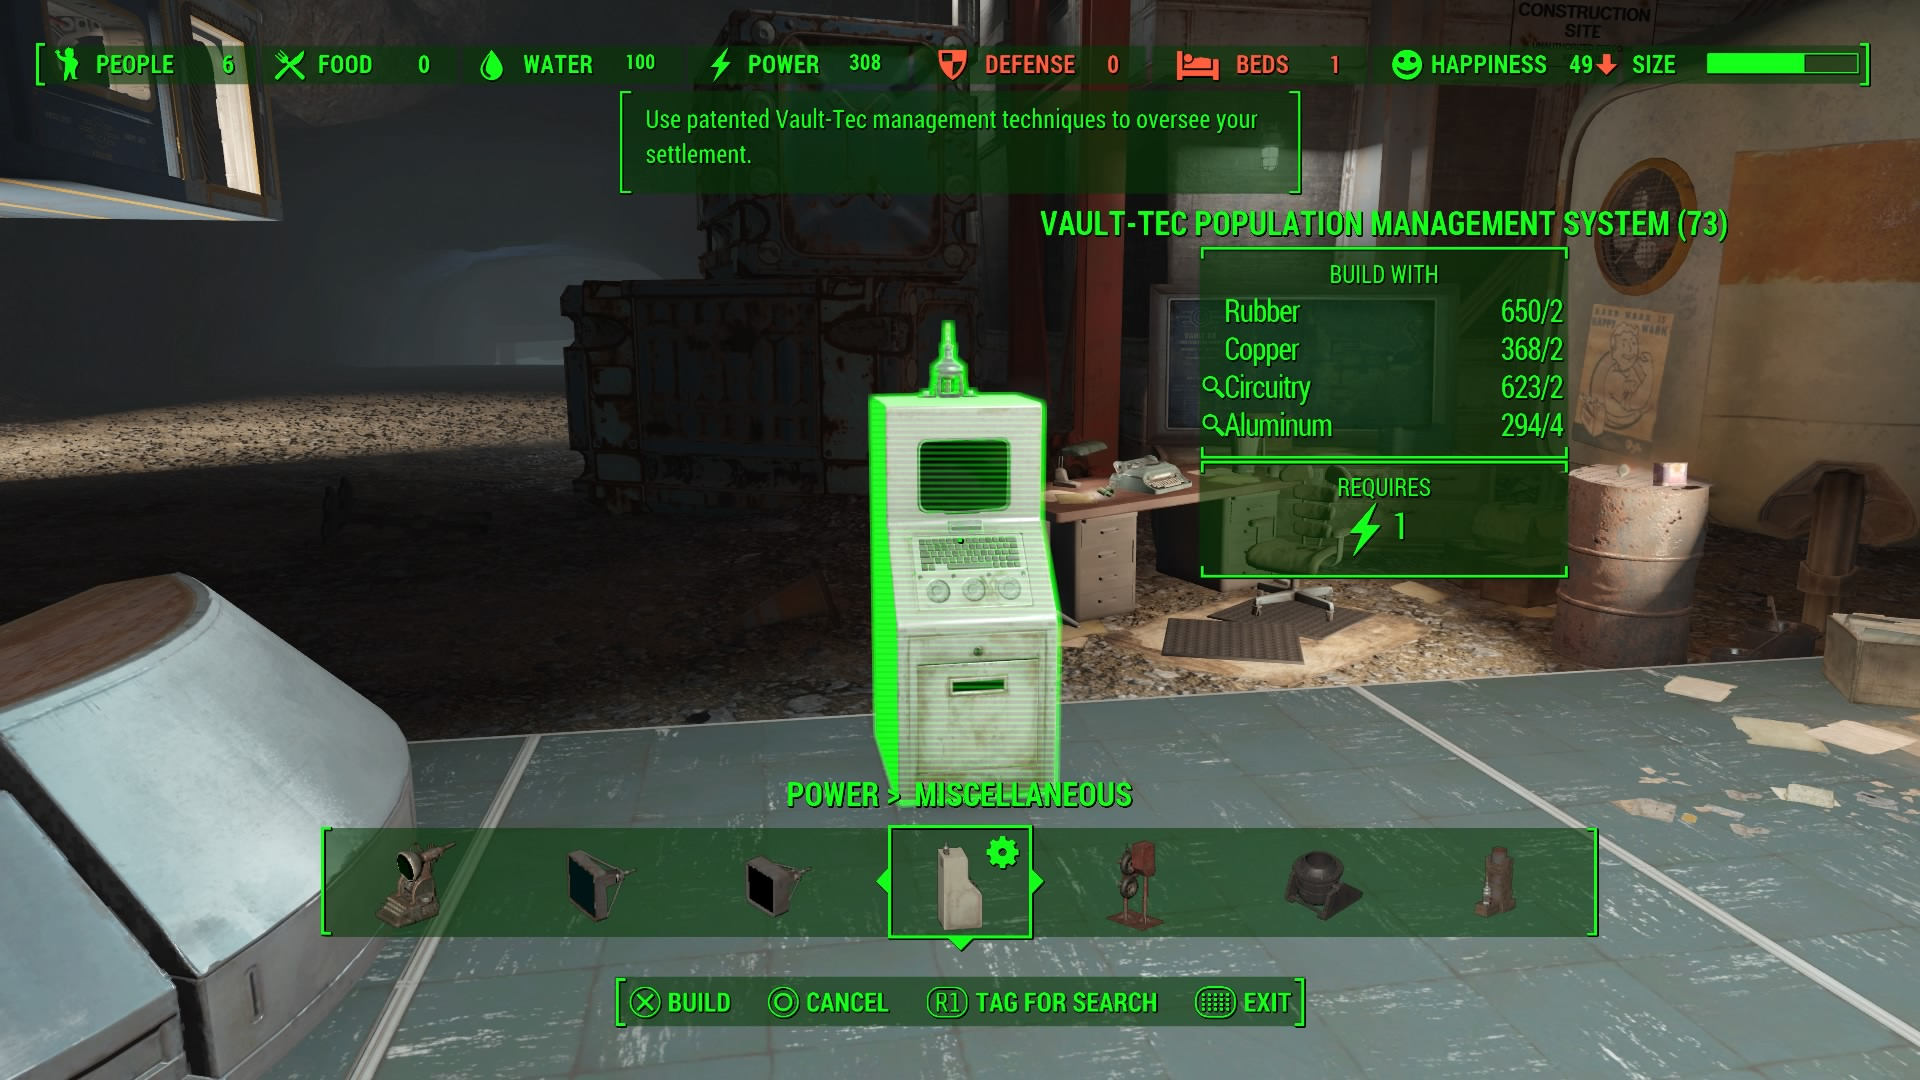 Fallout 4: Vault-Tec - How to Track Lost Companions - Gameranx